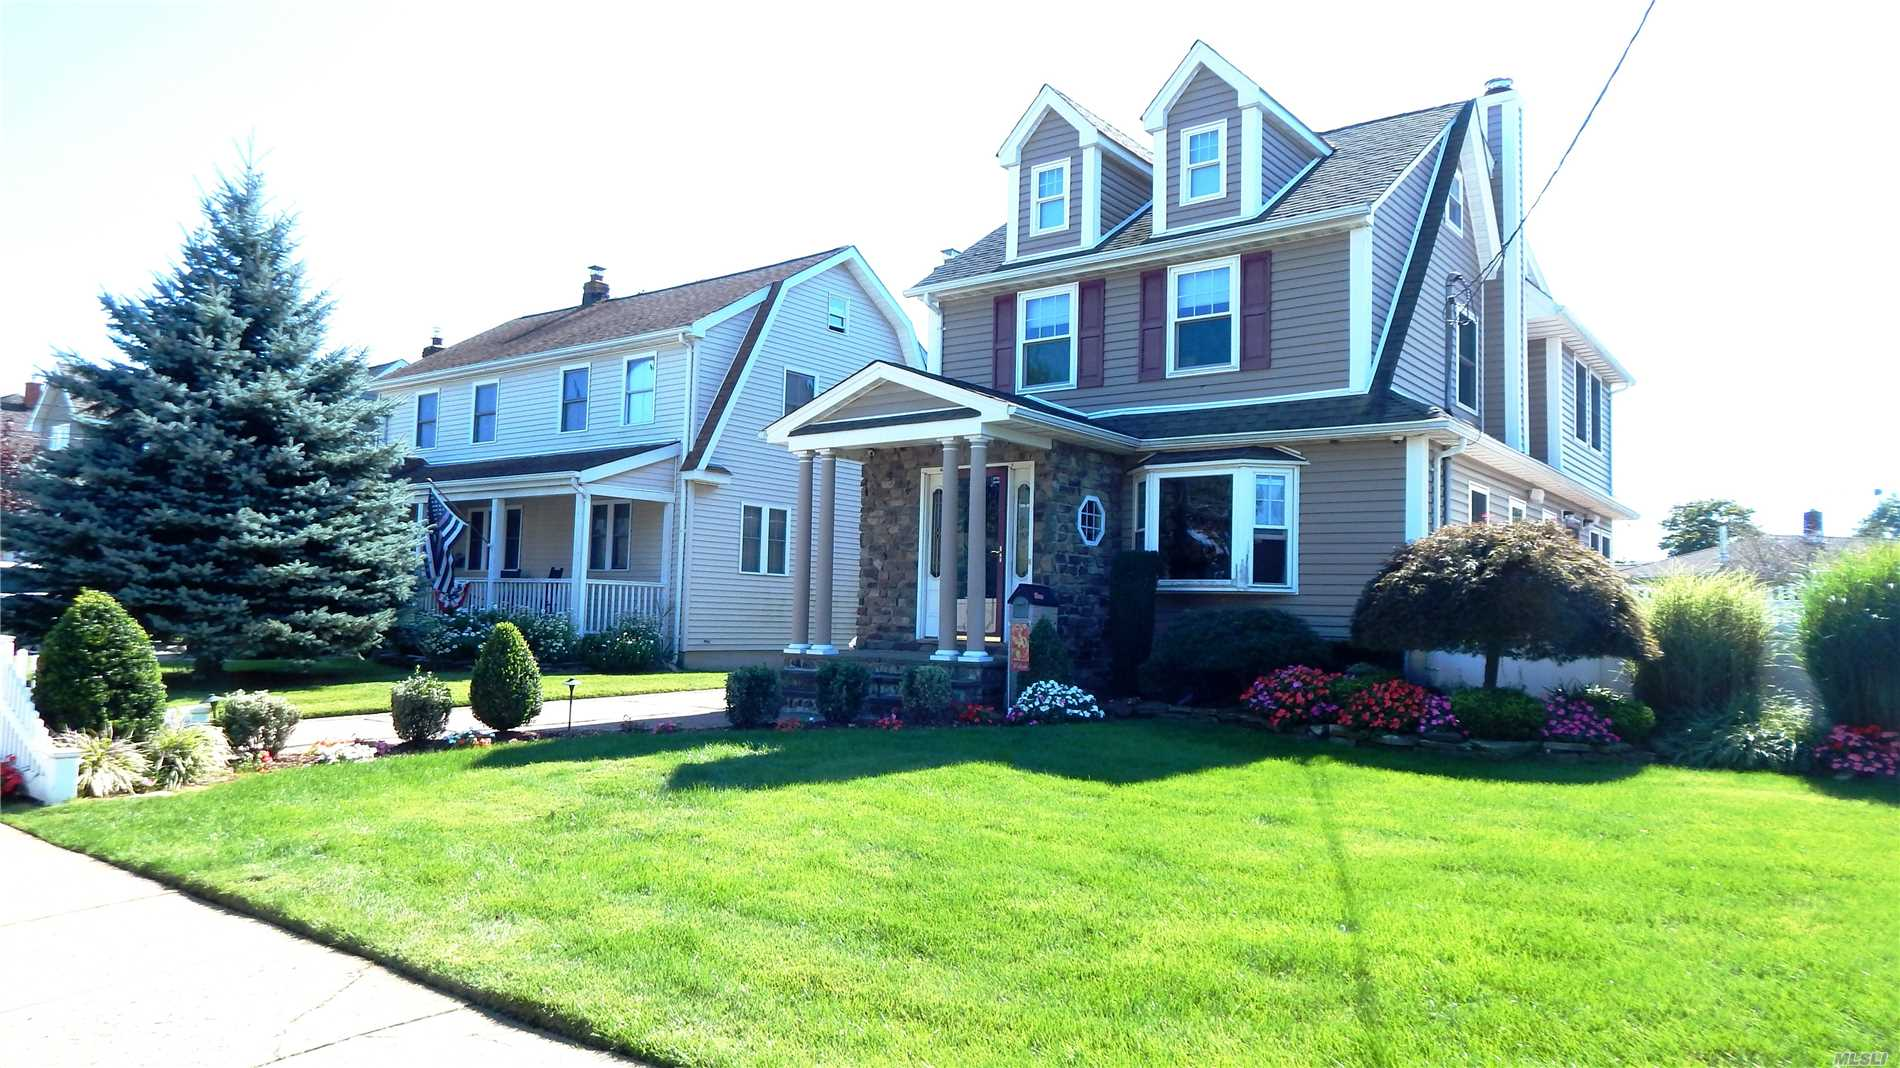 Photo of home for sale at 207 Claxton Ave, Bellmore NY